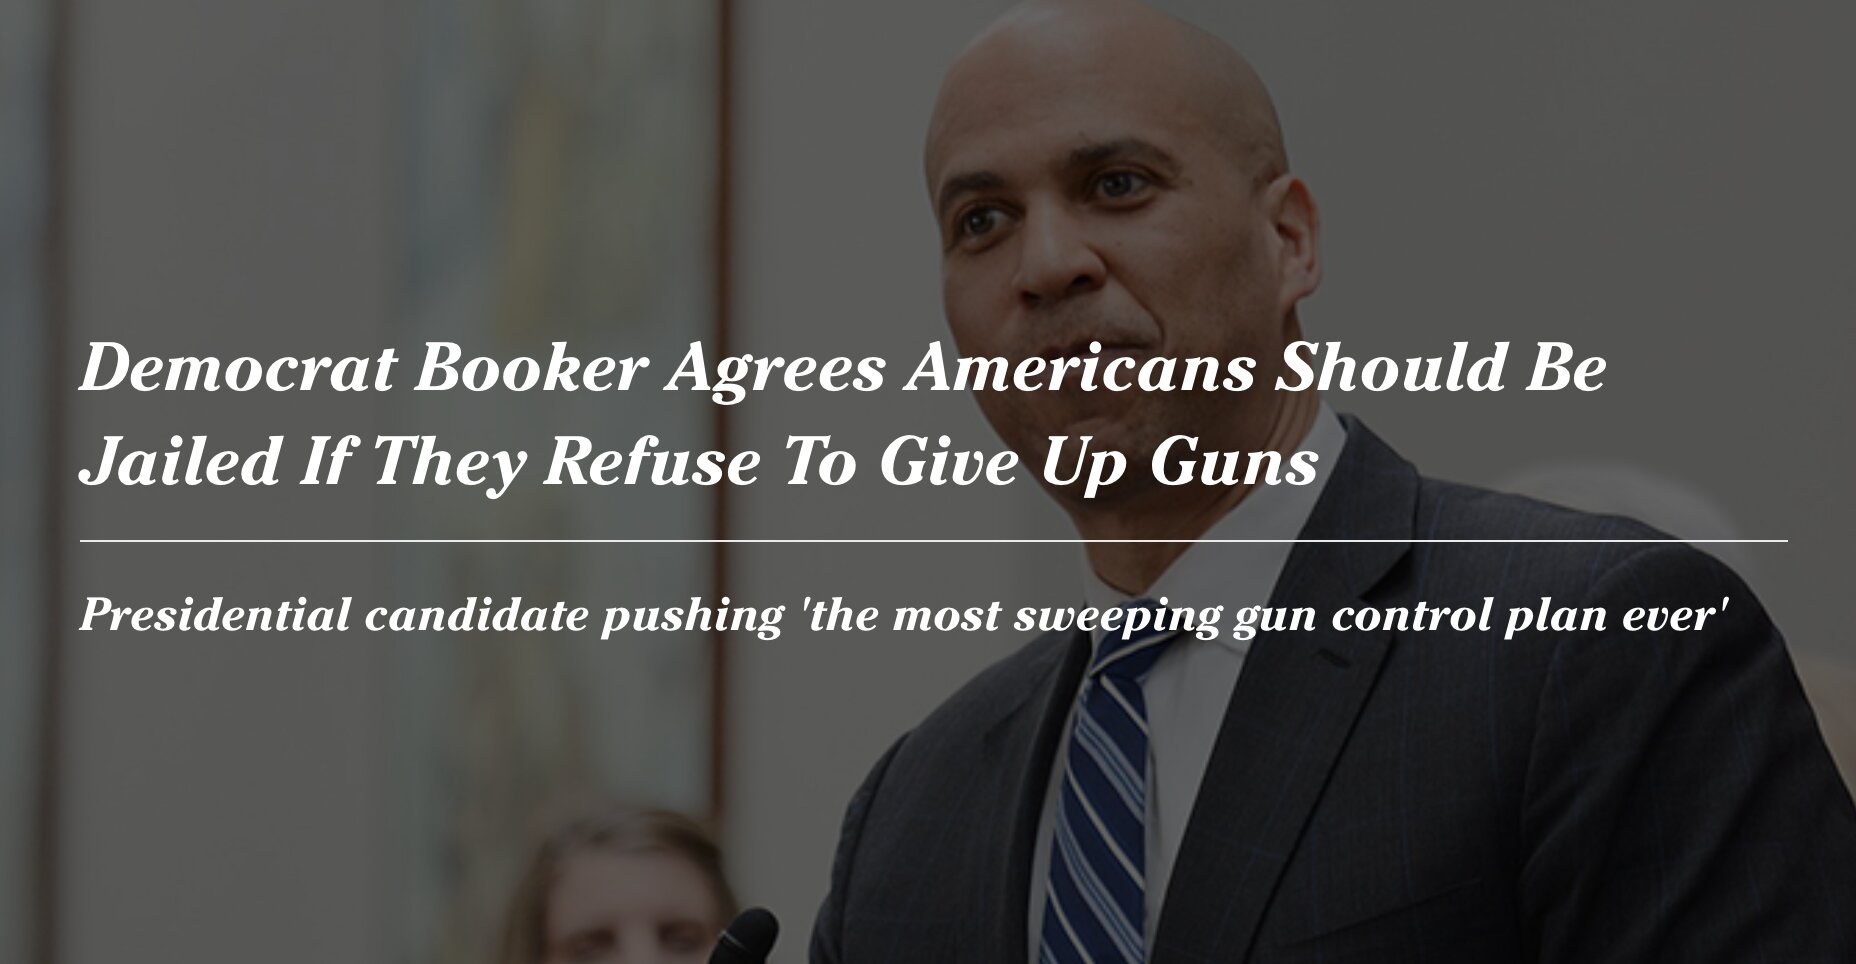 Democrat Booker Agrees Americans Should Be Jailed If They Refuse To Give Up Guns